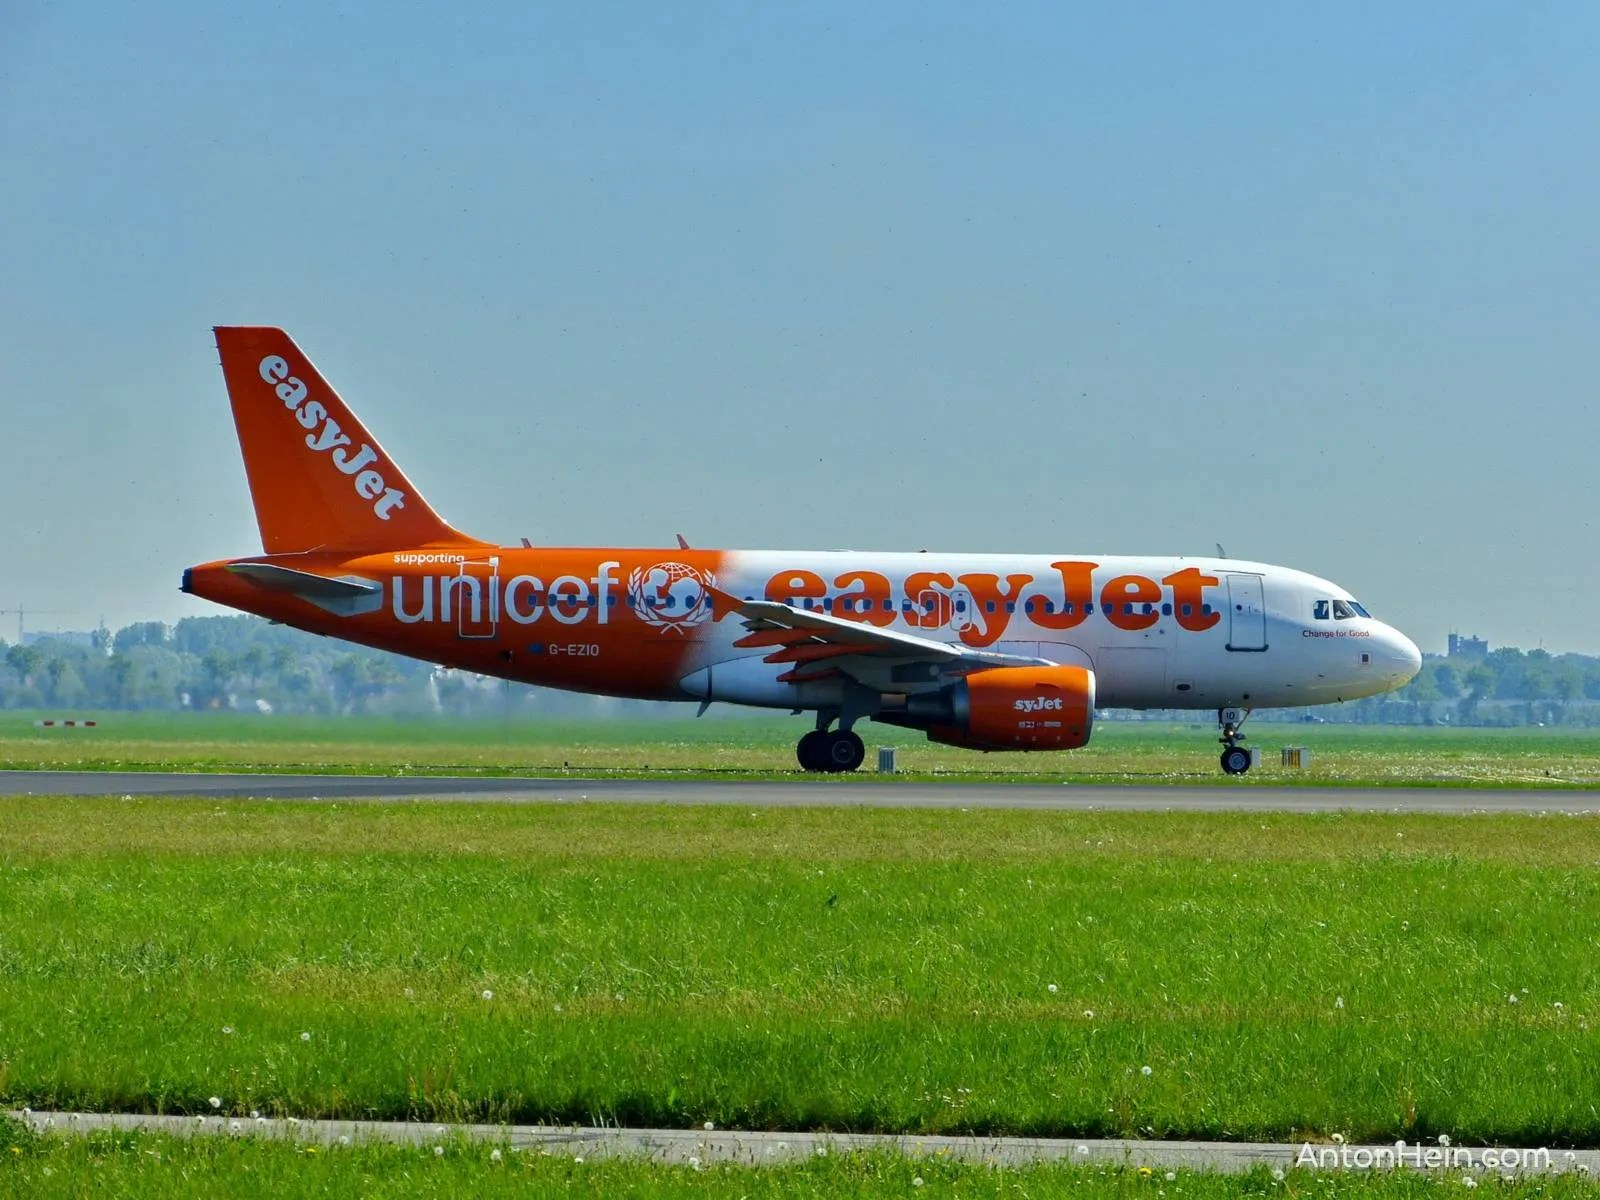 Easyjet plane just landed at Amsterdam Airport Schiphol